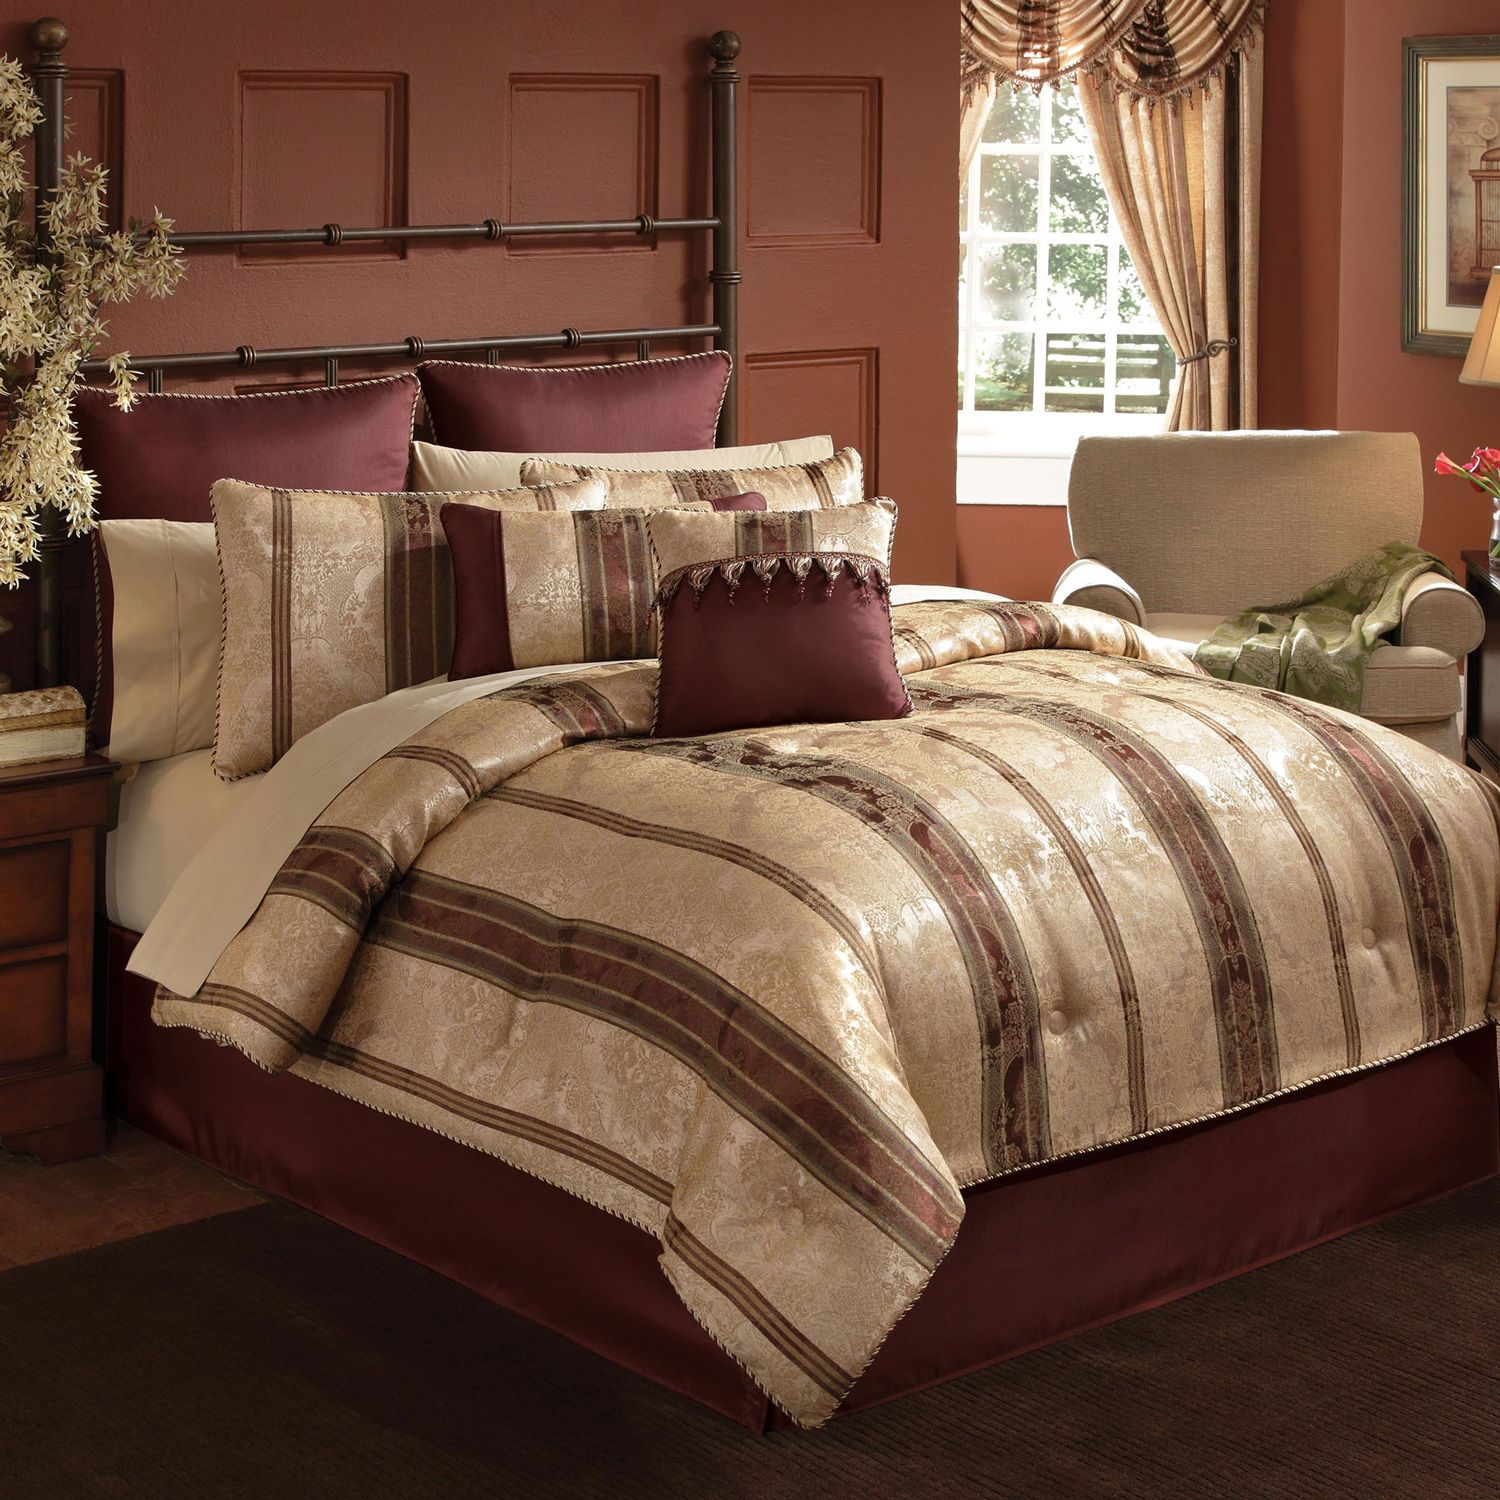 sears comforter contemporary with a cheap comforters california your in queen bag and design beige bed bedroom for king rugs decor wall brown minimalist plus sets